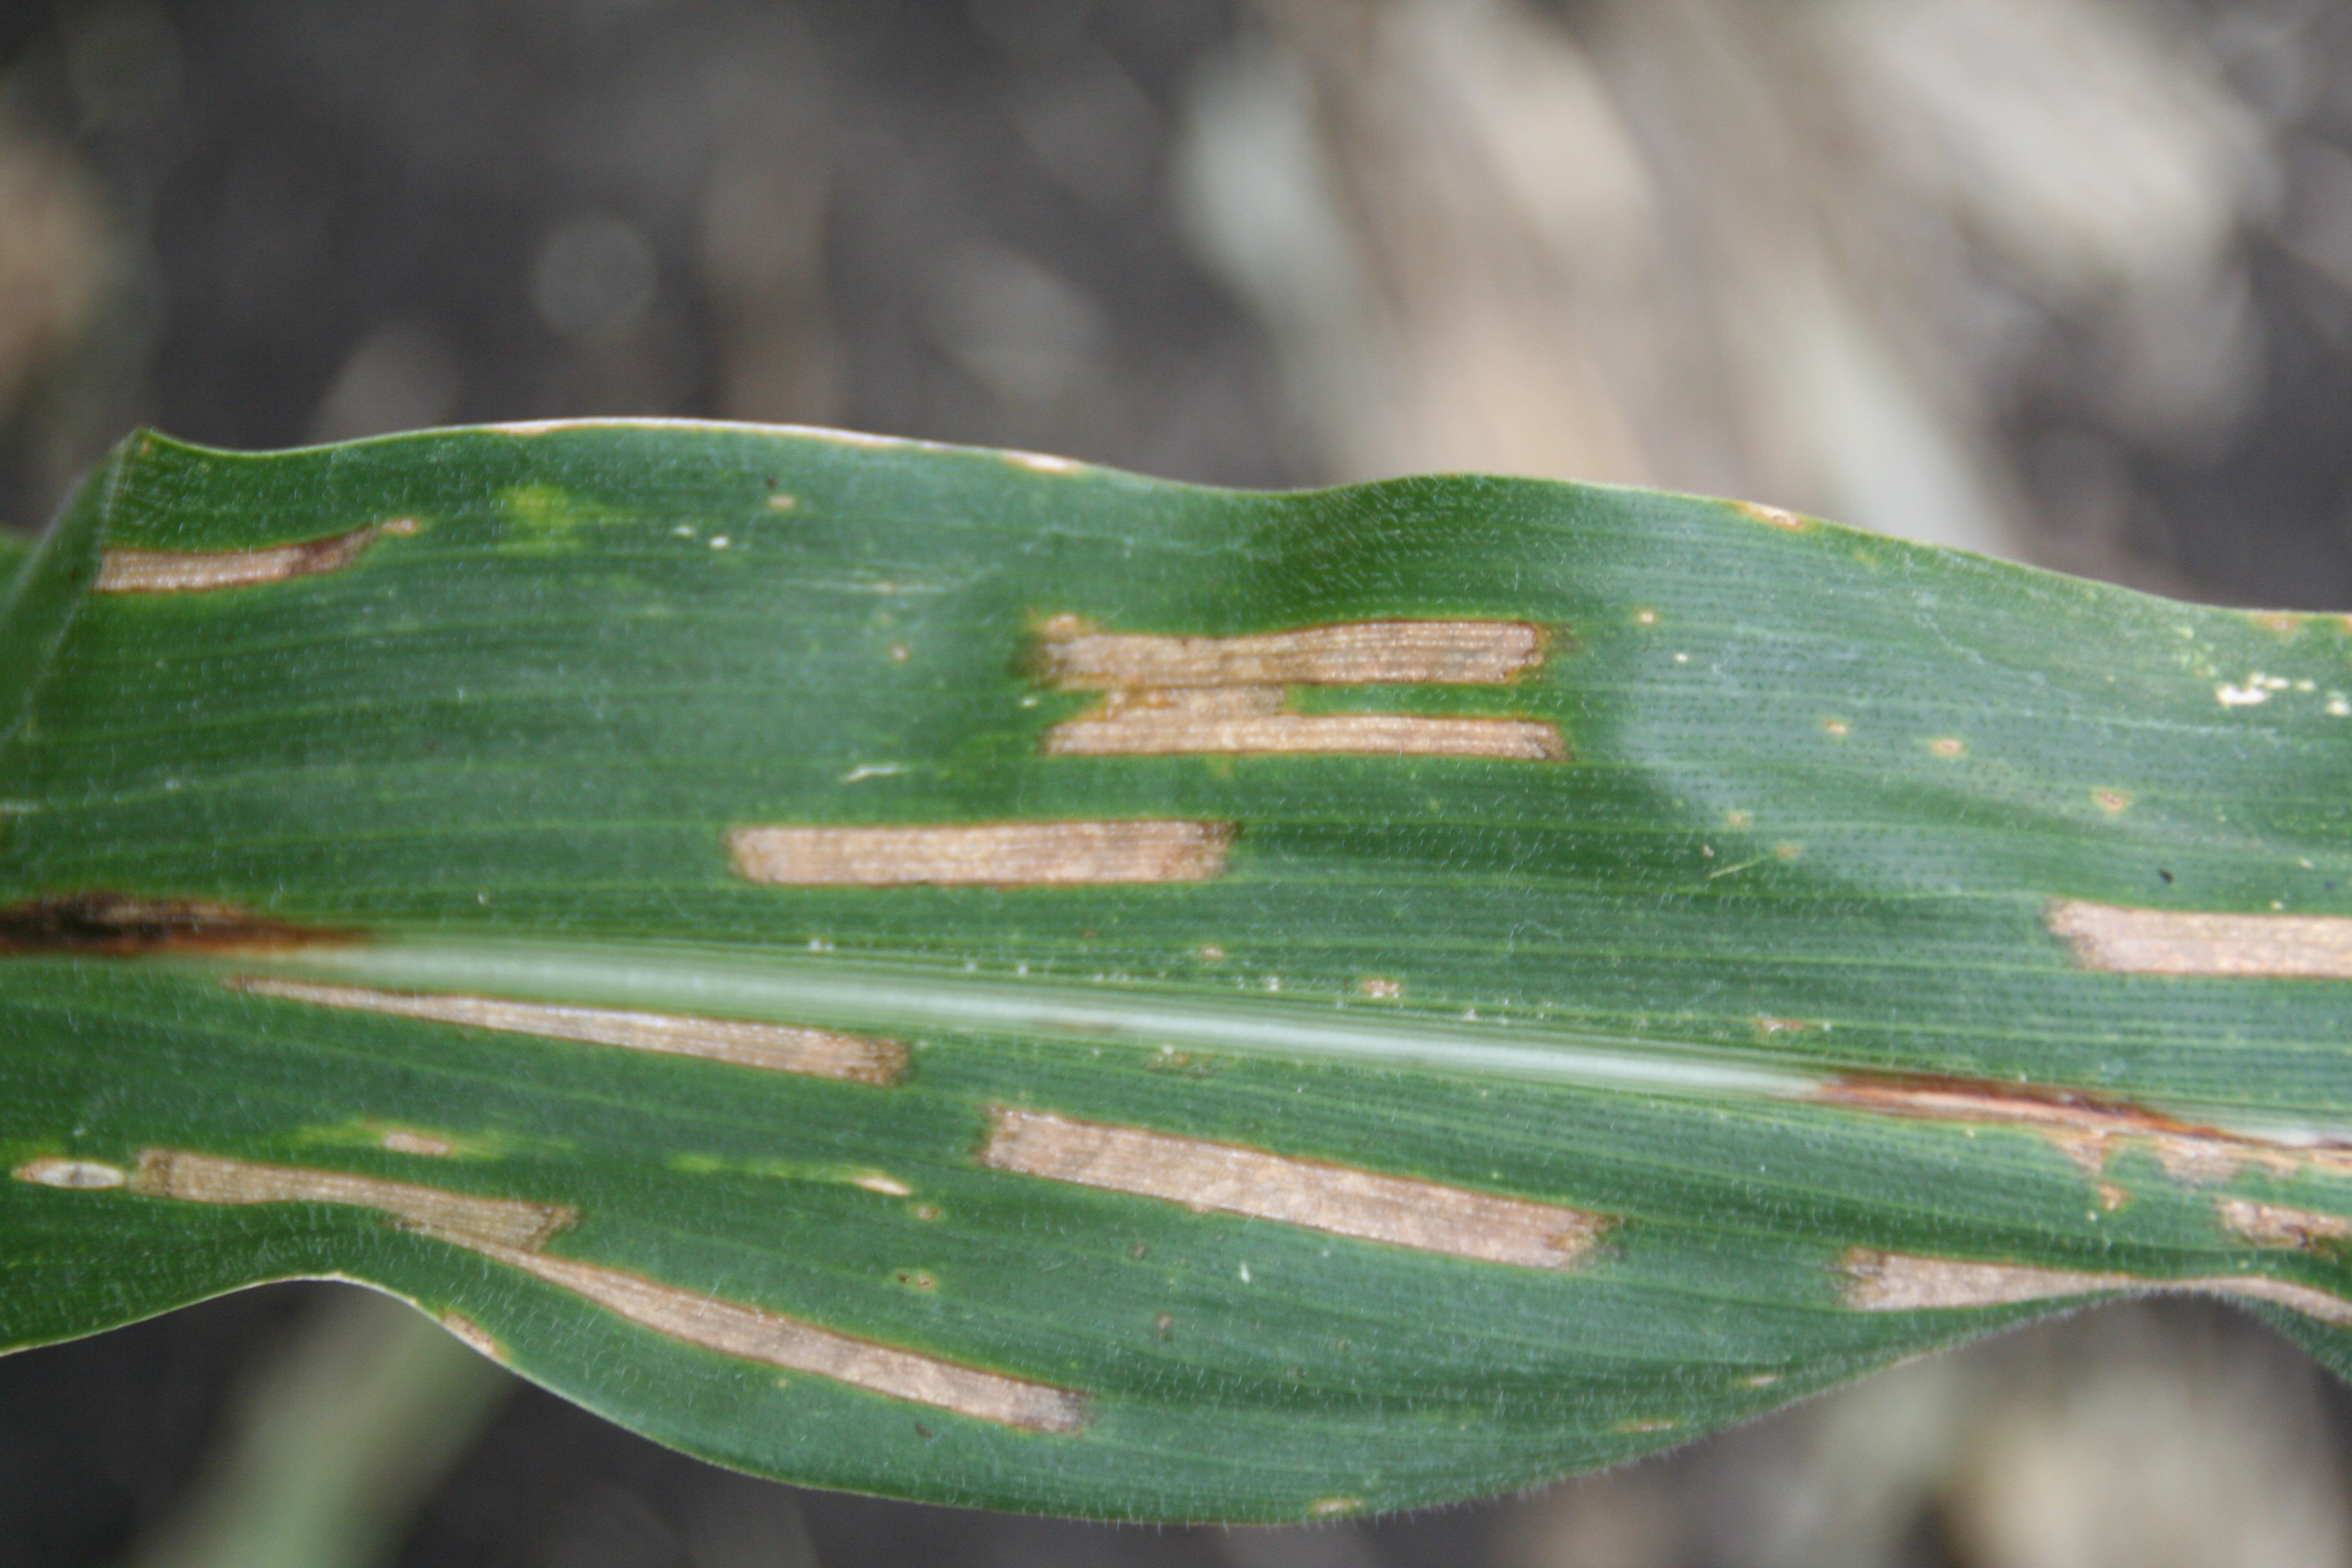 Characteristic rectangular gray leaf spot lesions.